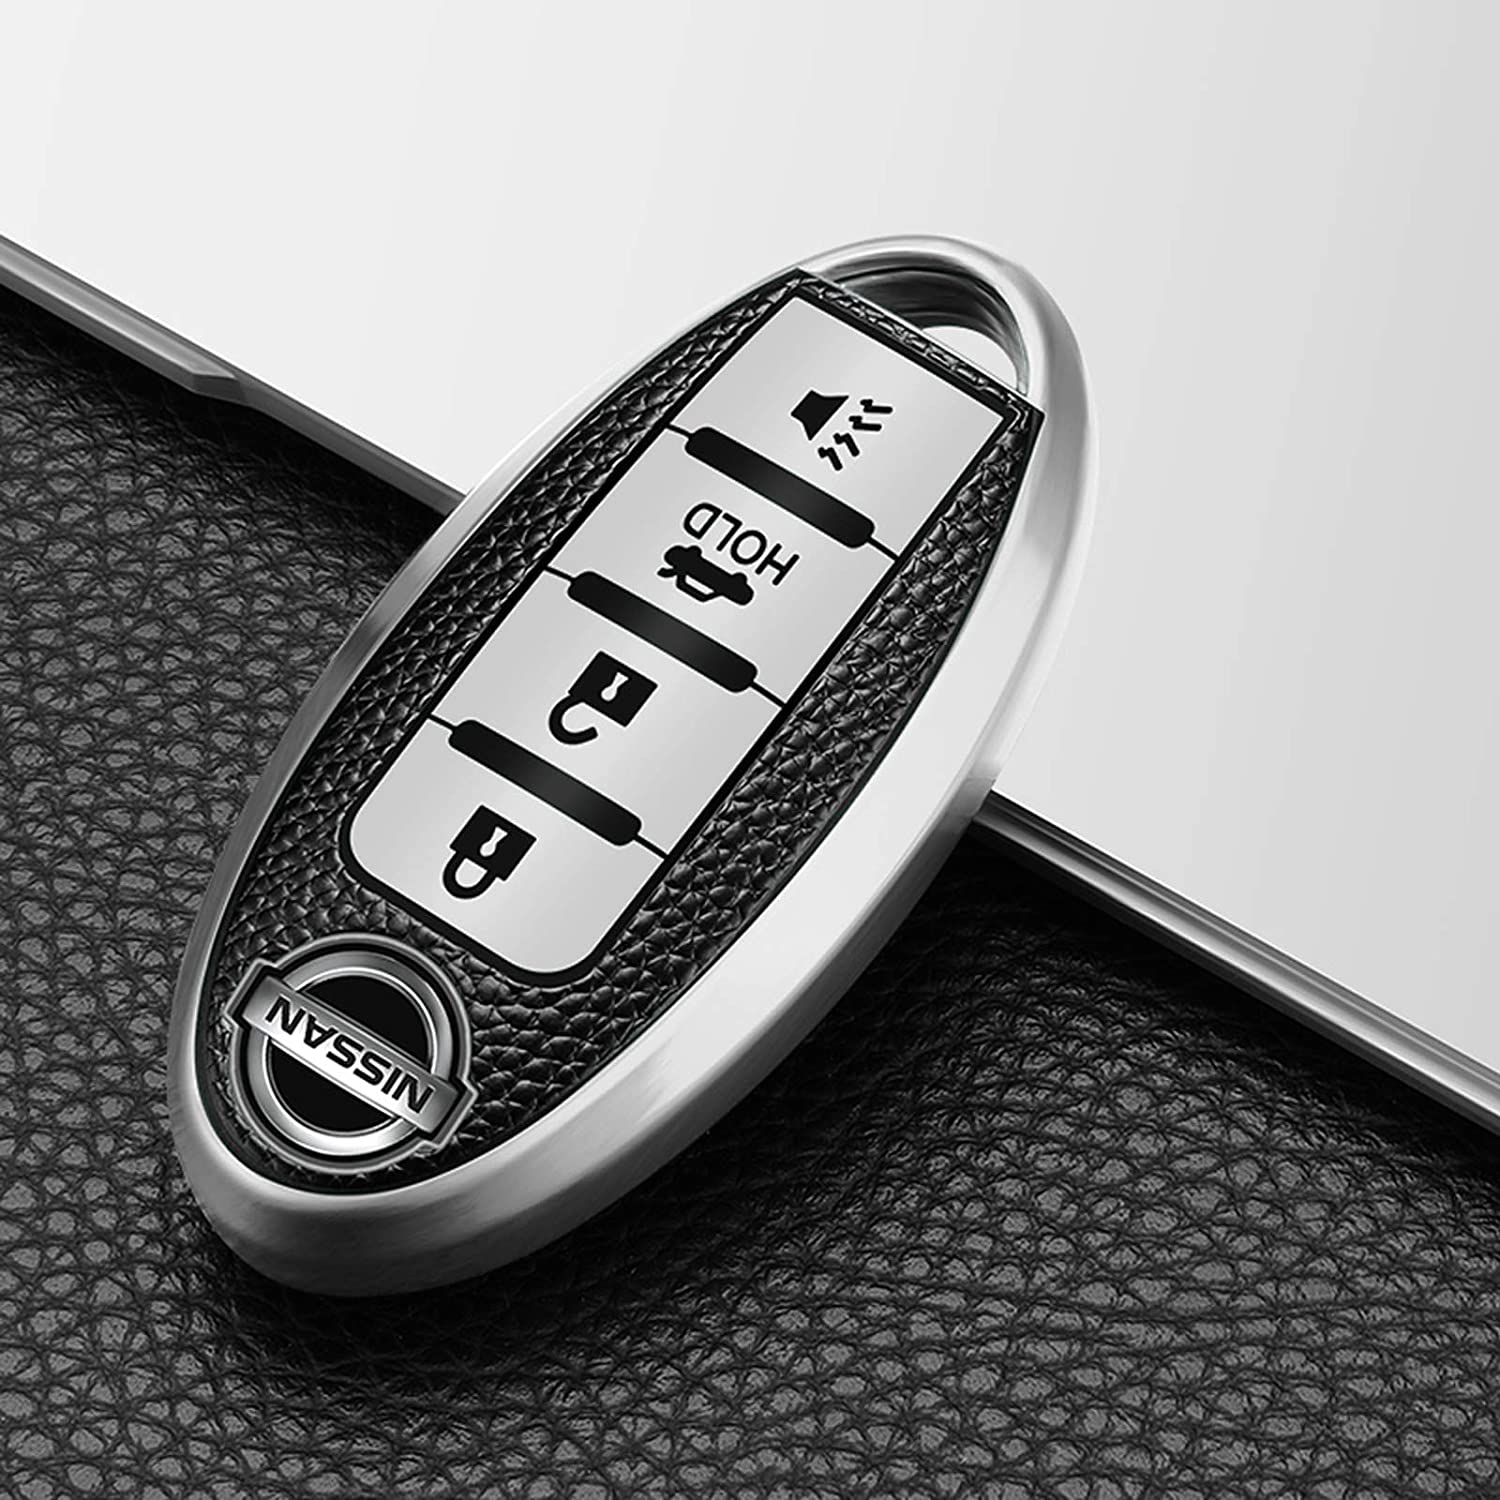 Trail Key Fob Cover Case Full Protector Premium TPU 4-Button Smart Keyless Entry Remote Jacket Skin Shell Latent Key Fob Fits for Nissan Sunny SYLPHY Murano X Silver